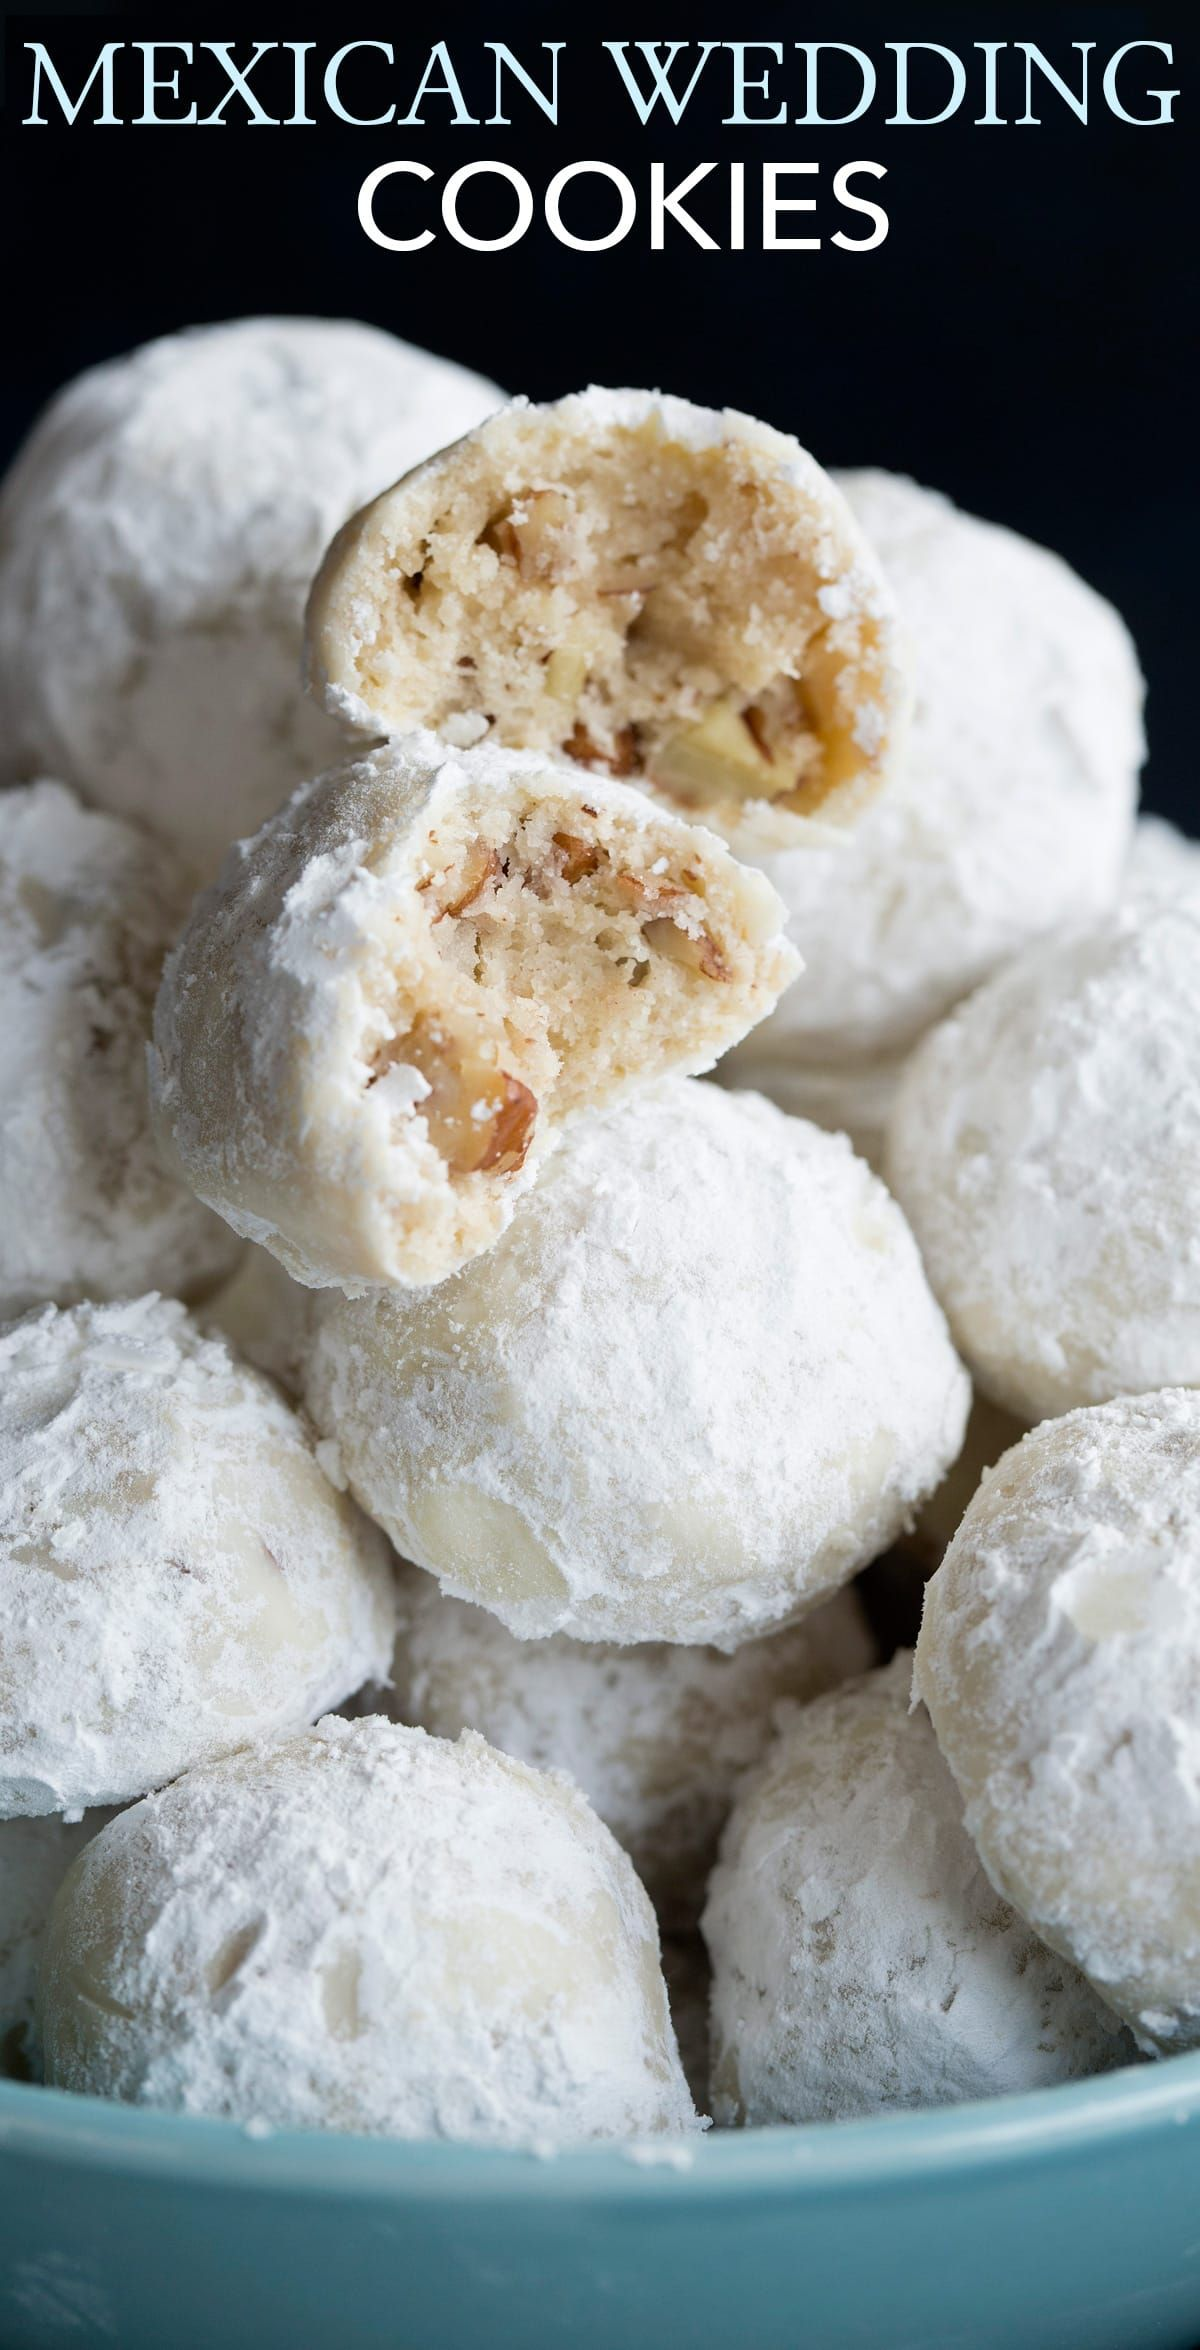 Mexican Wedding Cookies - Cooking Classy